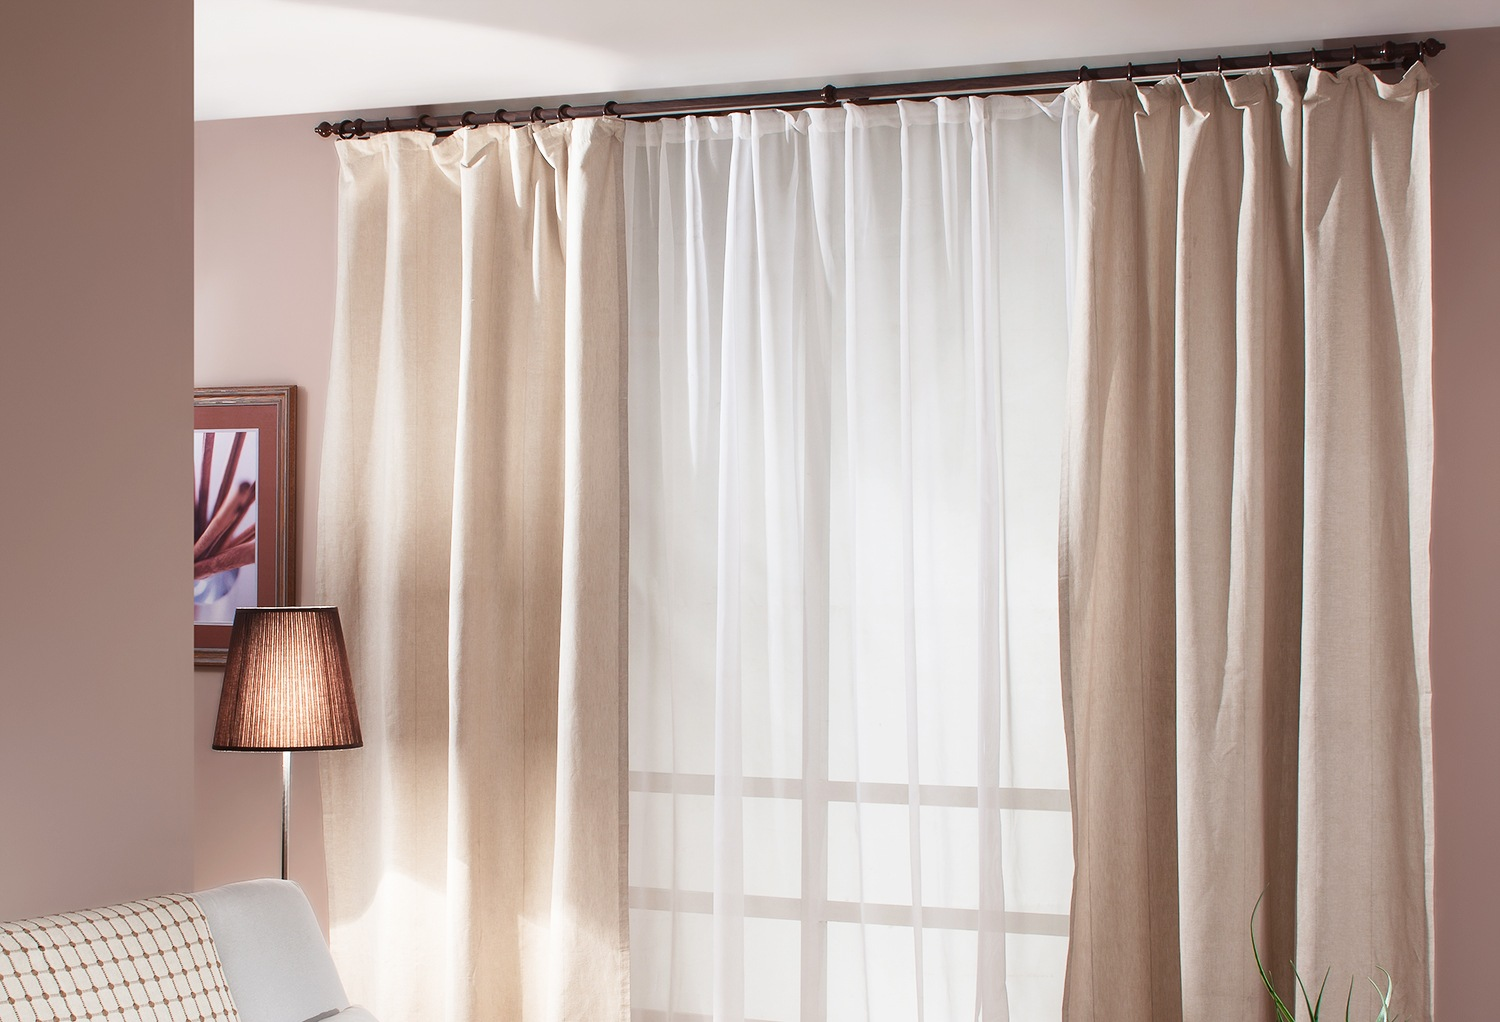 Peach colored room with pastel curtains